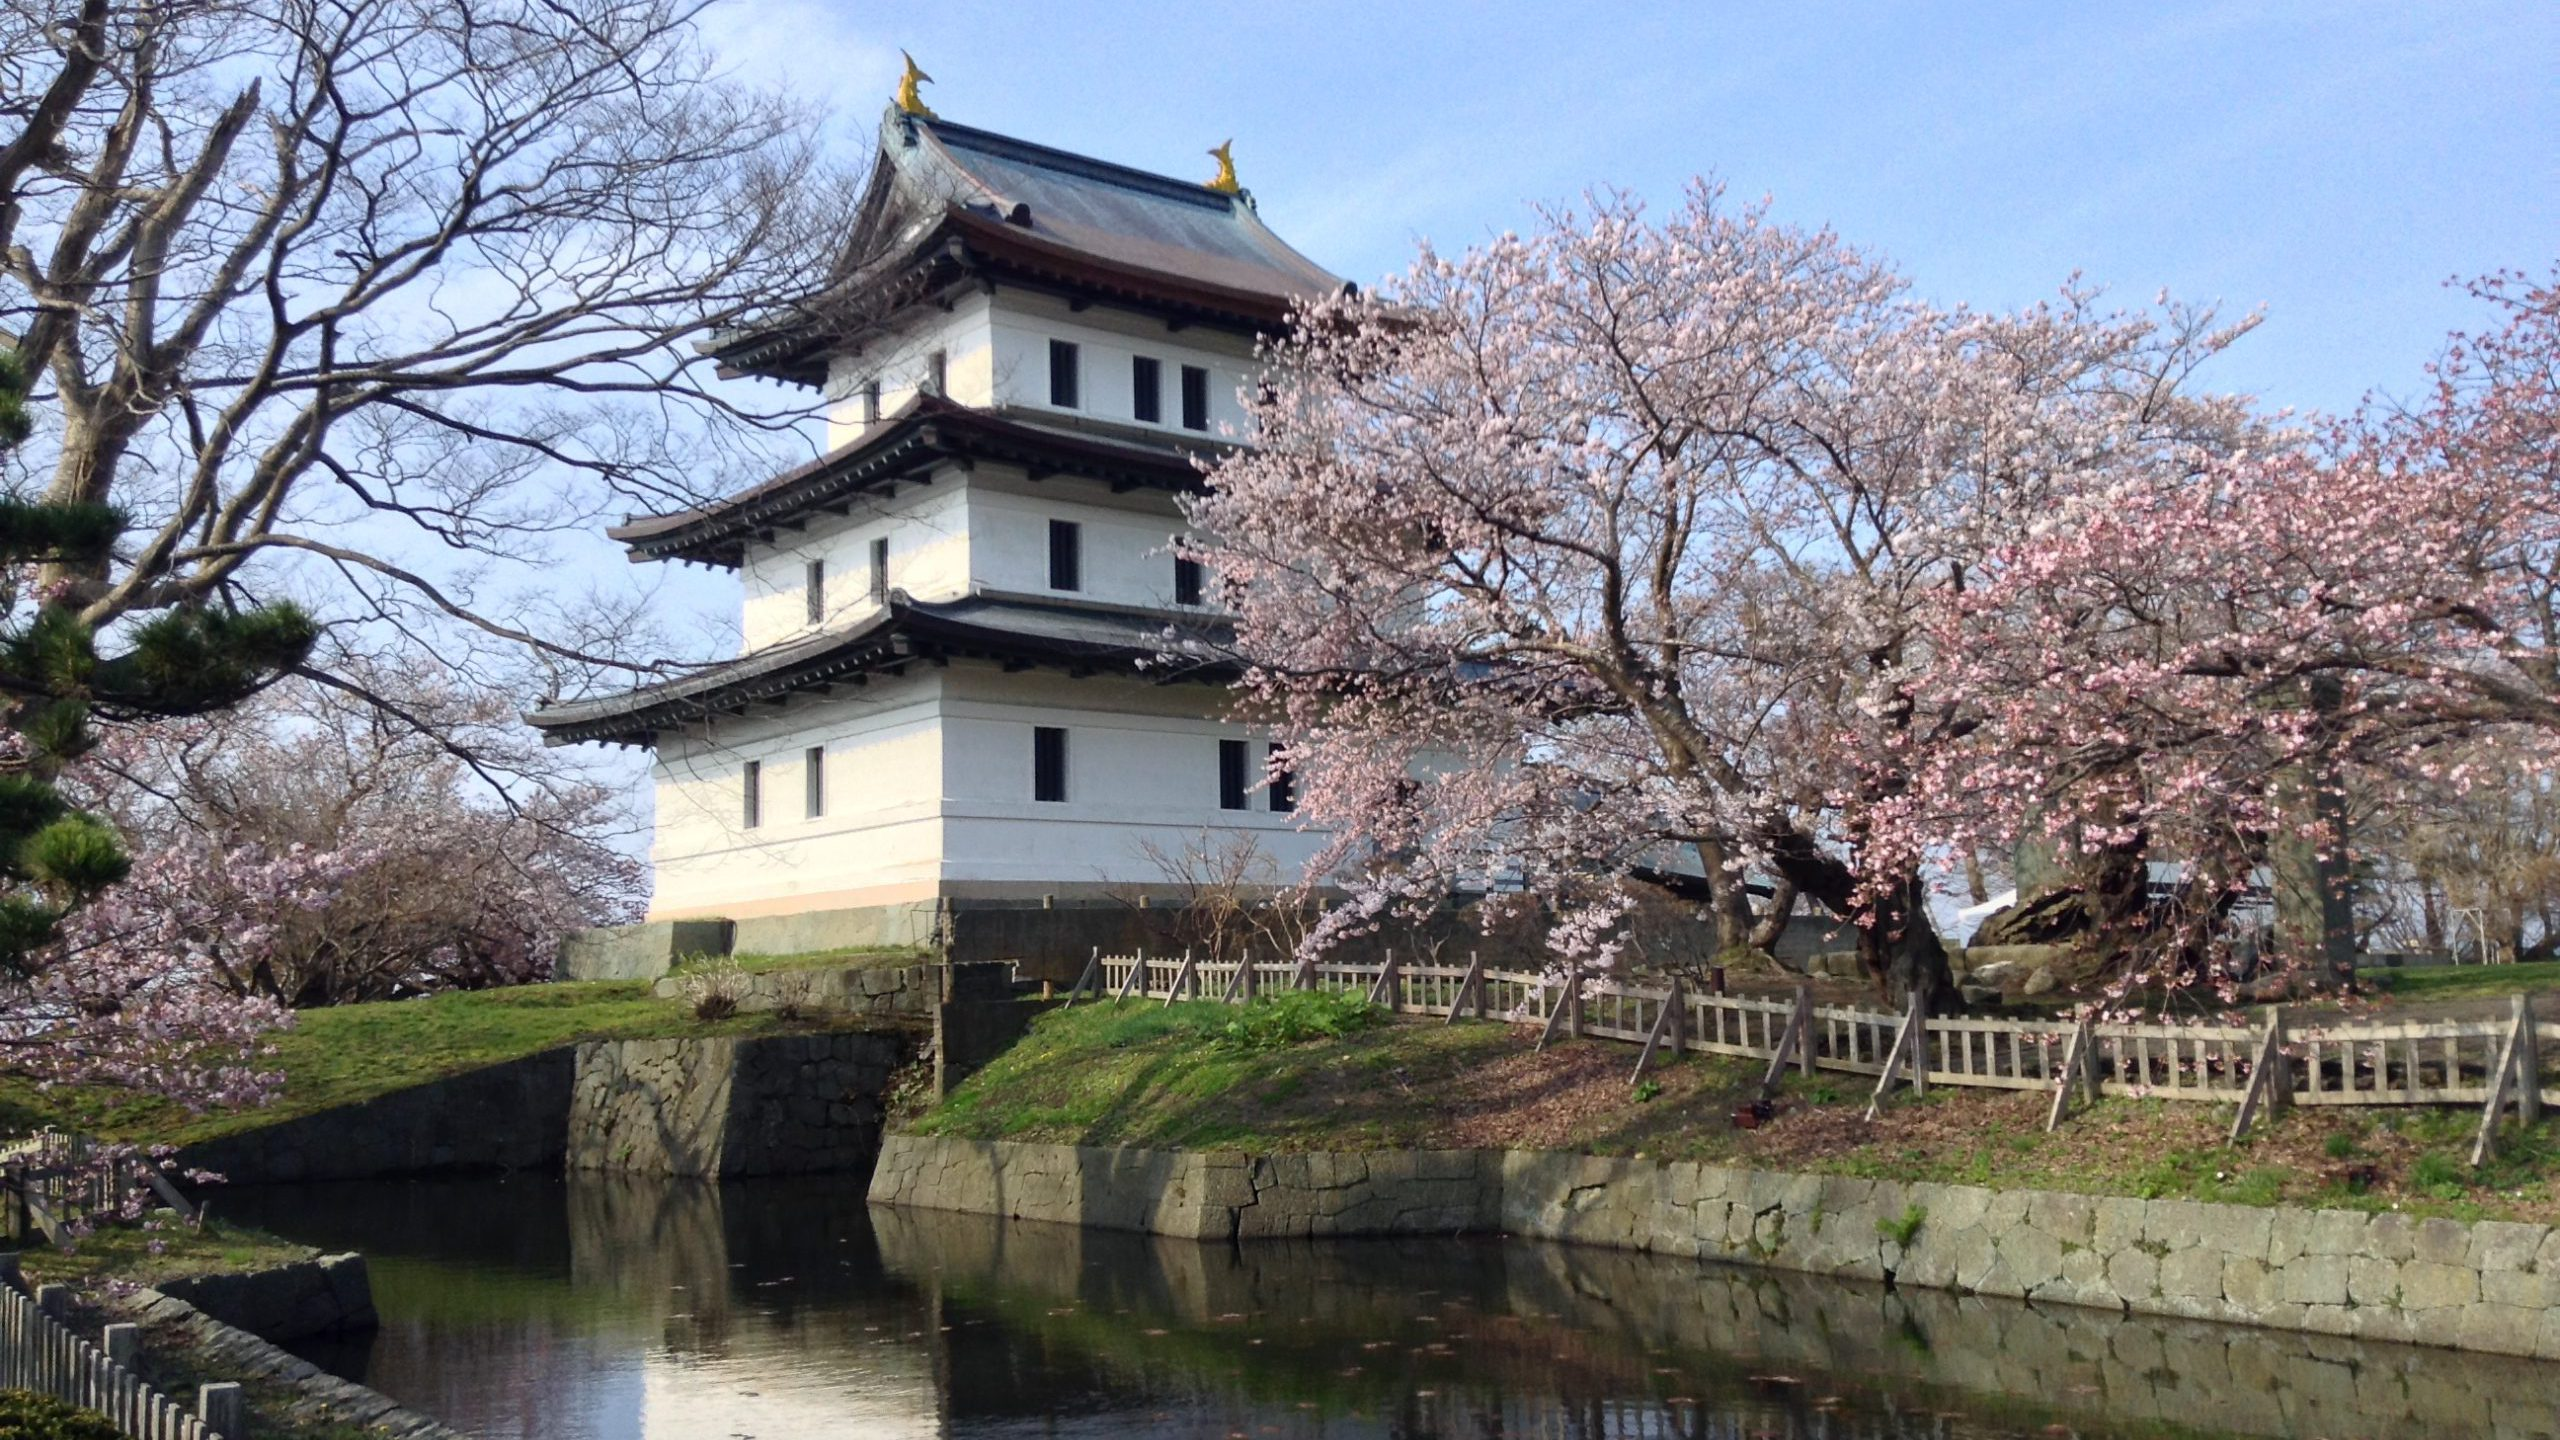 Matsumae Castle and Temple Town